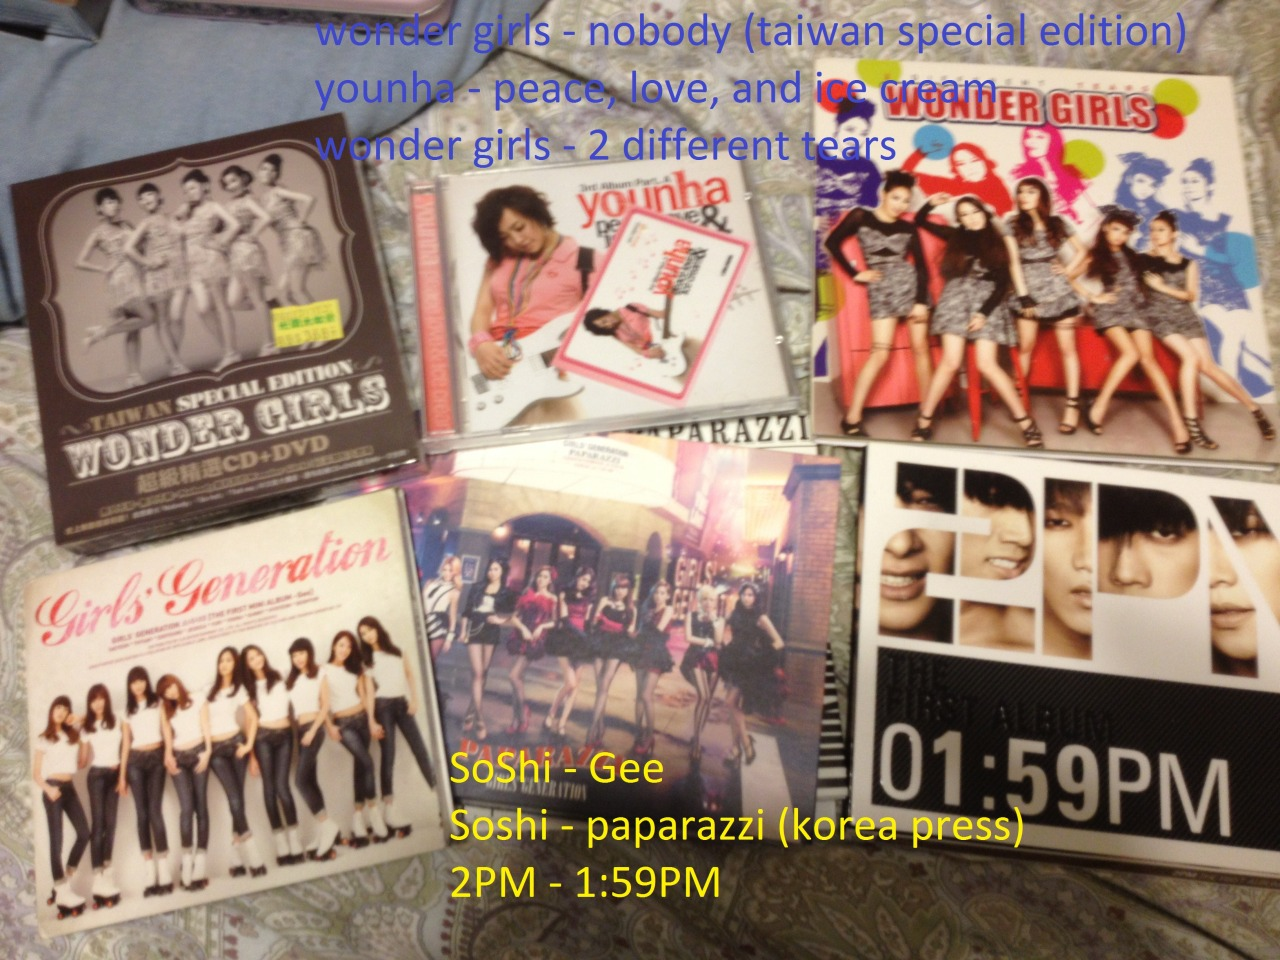 teddybeargun:  MY VERY 1ST KPOP GIVEAWAY (+3 chinese albums) Hey guiseeeeee so im an impulsive buyer and i buy a whole bunch of albums and merchandise that i either look through once or never even touch and i decided, since i love tumblr folk so much, why not give it to someone who will actually appreciate it???? SO IM HAVING A GIVEAWAY AWESOME IKR so yeah rules and stuff i guess lol: 1. reblog or like however much you like (hahah i said like twice) 2. must be following me, this giveaway is for my lovely followers<3 (don't just follow for the giveaway and then unfollow afterwards i'll be sad :( ) 3. that's it but i felt like having 3 rules because i like the number 3 DEADLINE: JUNE 28 (seohyun's bday lol) the day after that i'll do a random generator thing and pick 2 people, 1 thing each and send an ask so make sure your askboxes are open then! if not, ill have to pick someone else!! sadlyfe :( and you'll have 2 days to respond to my ask if i dont get a response after that i'll pick another person even more sad MERCHANDISE: EVERYTHING THAT IS SHOWN IN THE PICTURES ABOVE IF YOU HAVE ANY QUESTIONS ABOUT ANYTHING IN THE PICTURES ASK ME if you have any QUESTIONS just shoot me an ask or tweet me, my twitter is @teddybeargun i also have a lot of other things i want to giveaway so if this giveaway goes well i'll definitely do more in the future!!